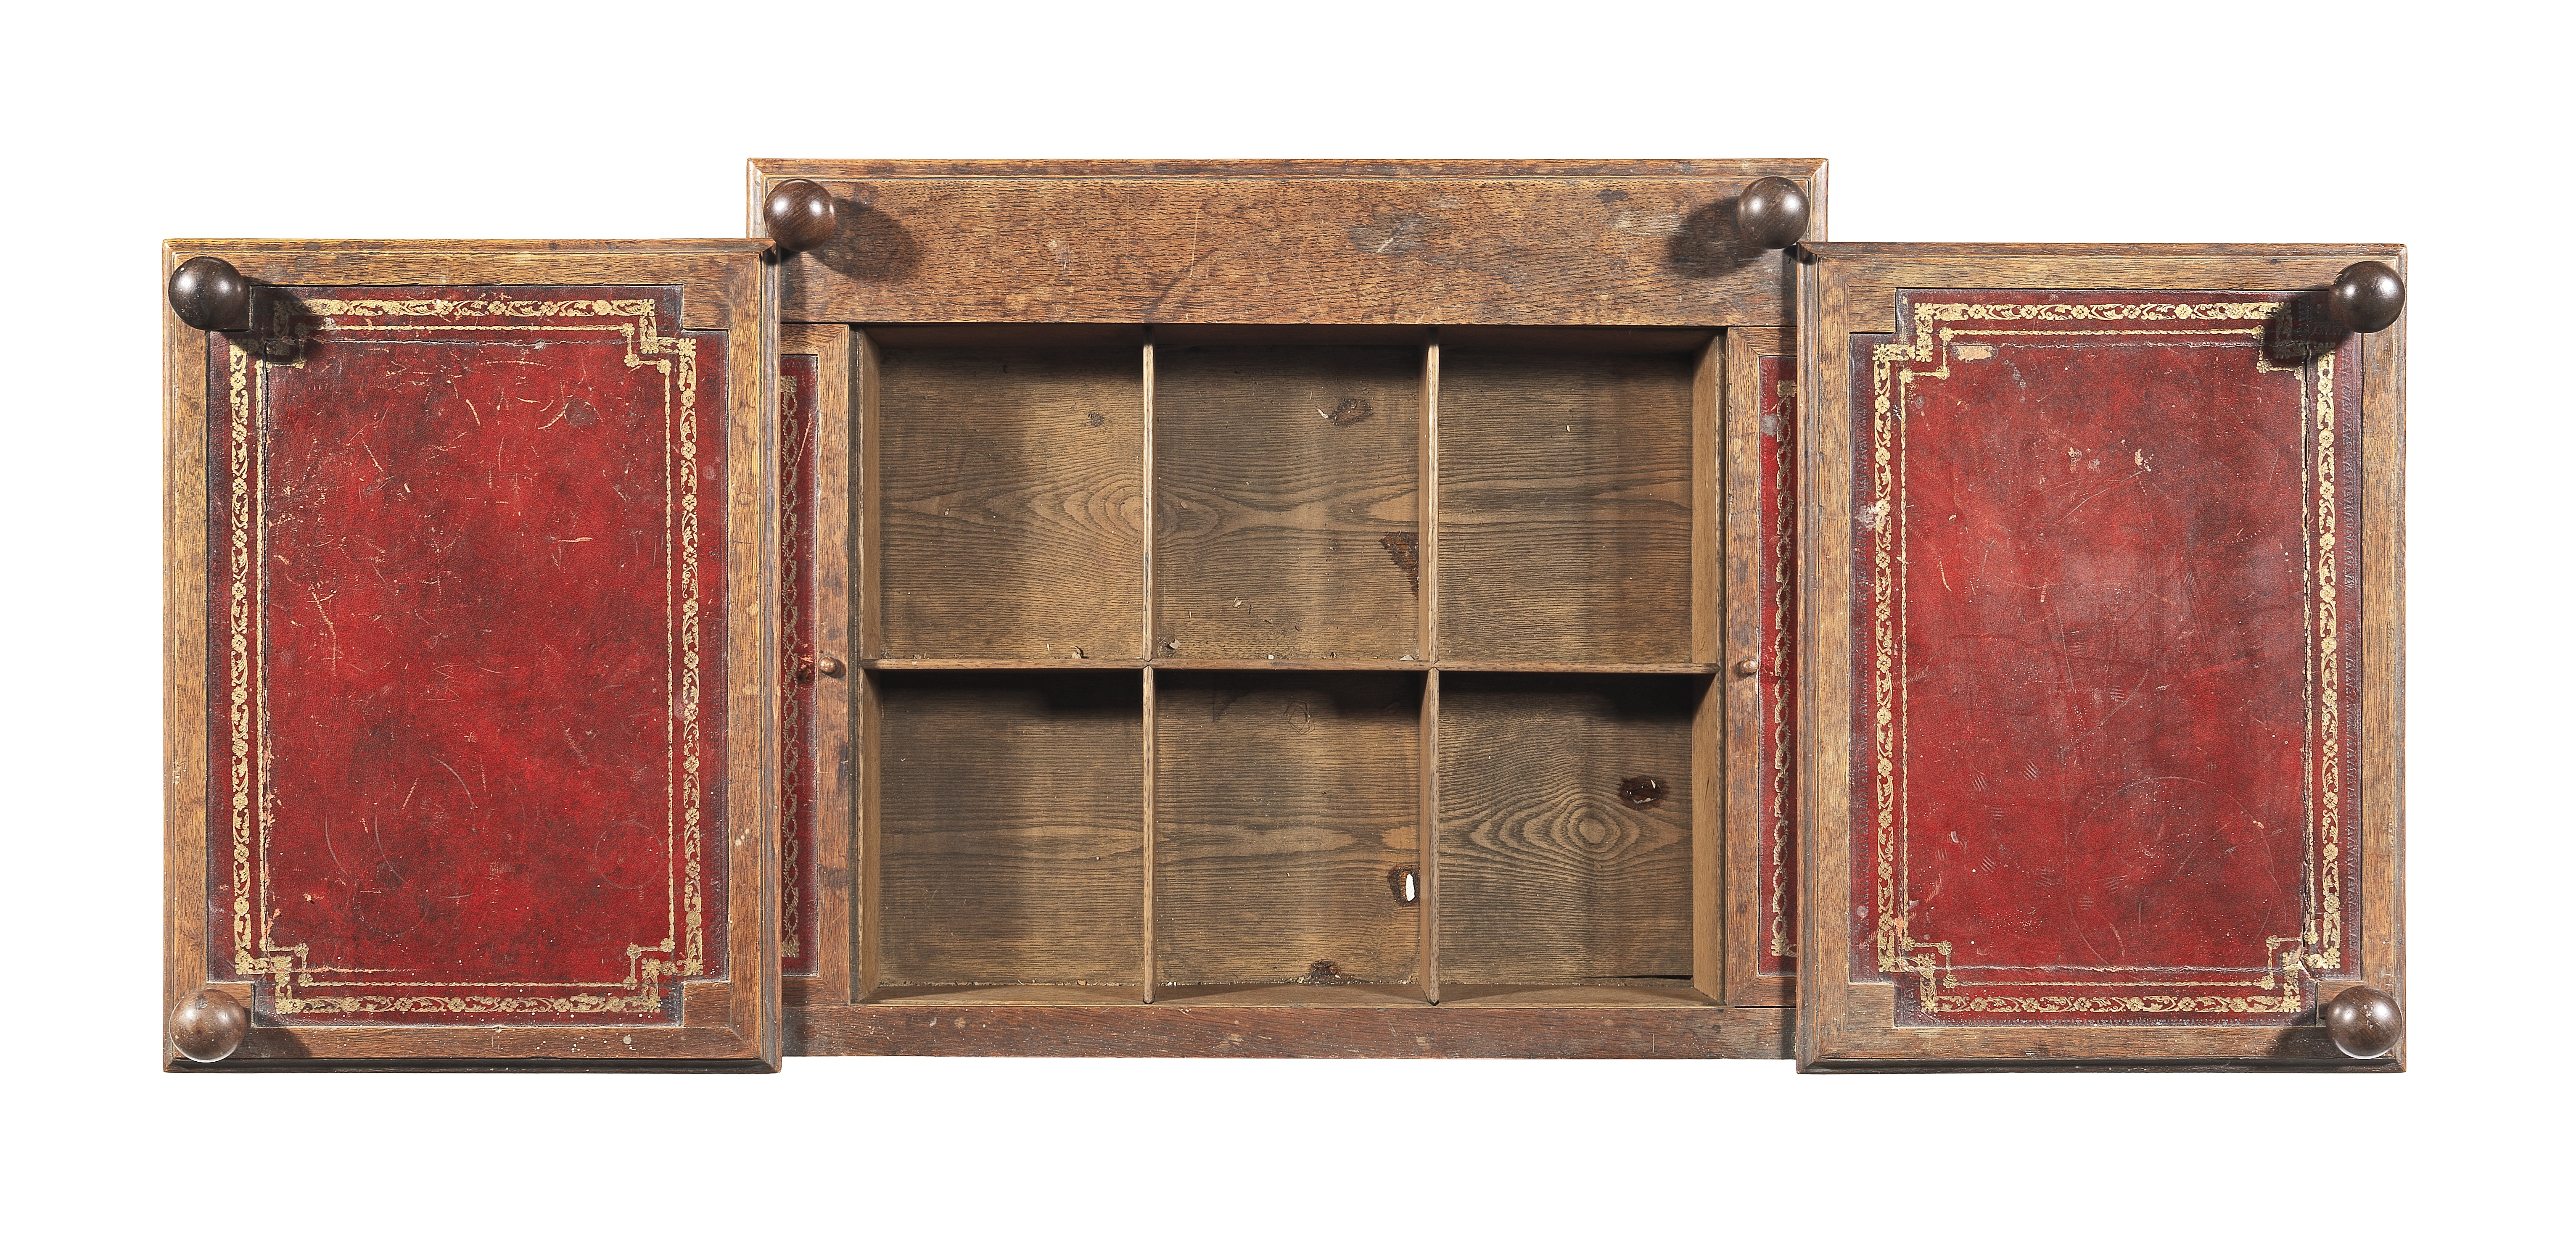 Lot 26 - A Regency gothic revival oak breakfront dressing table after a design by George Smith